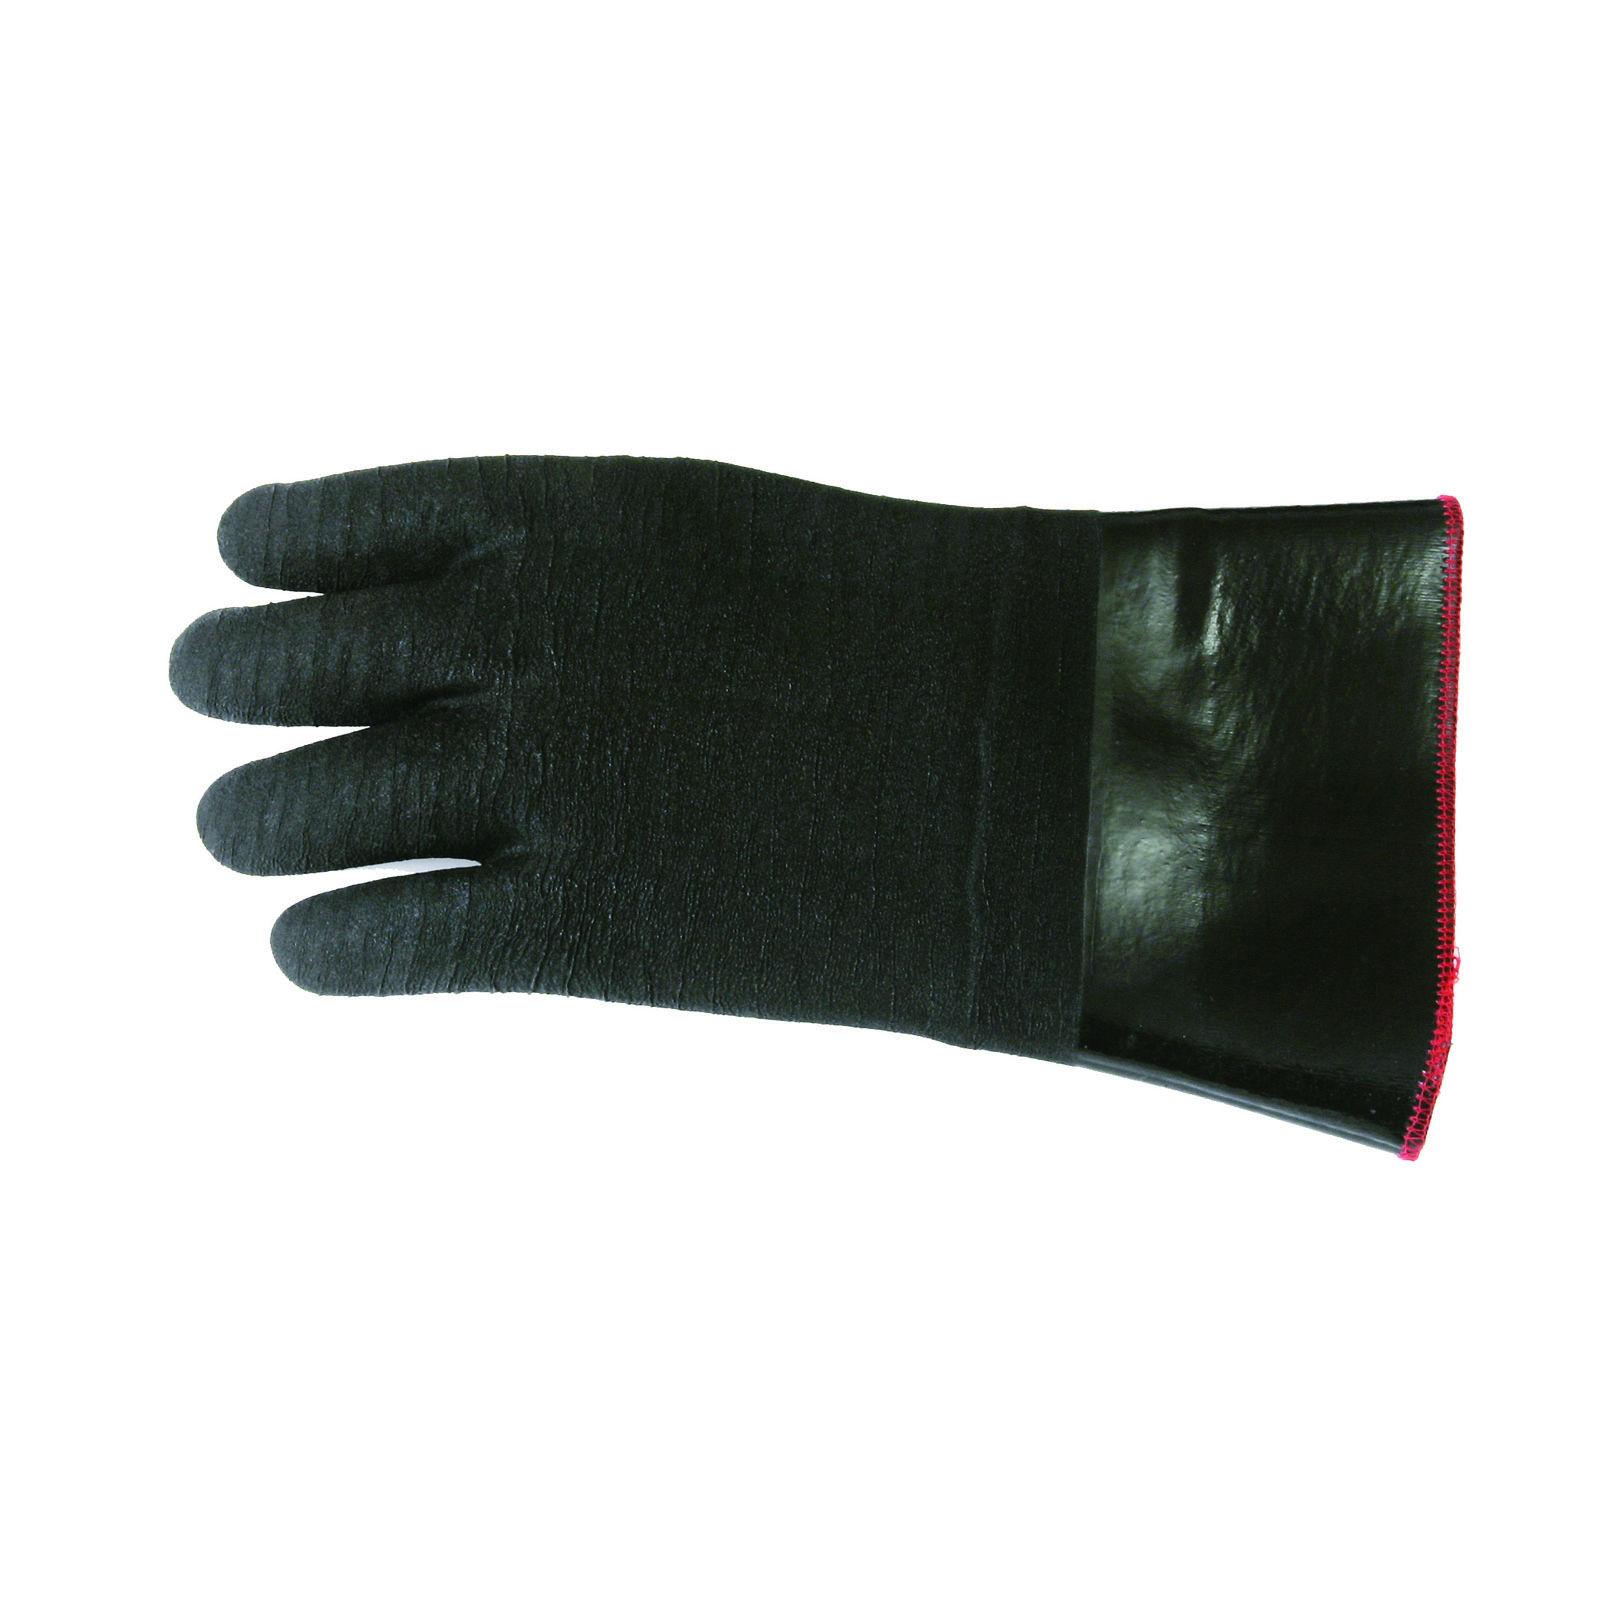 San Jamar T1212 gloves, heat resistant